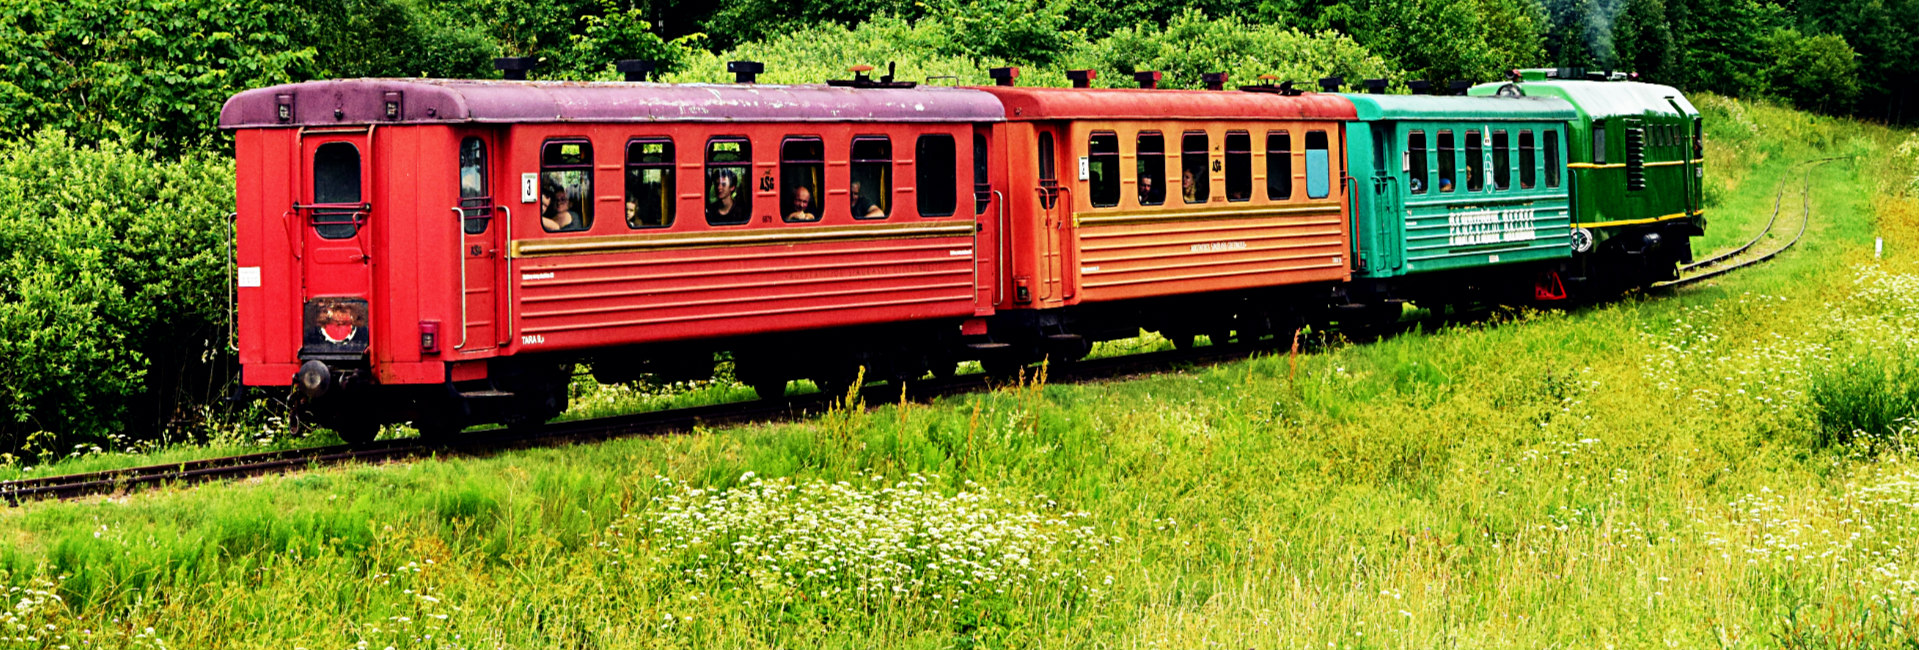 Vintage train in Lithuania